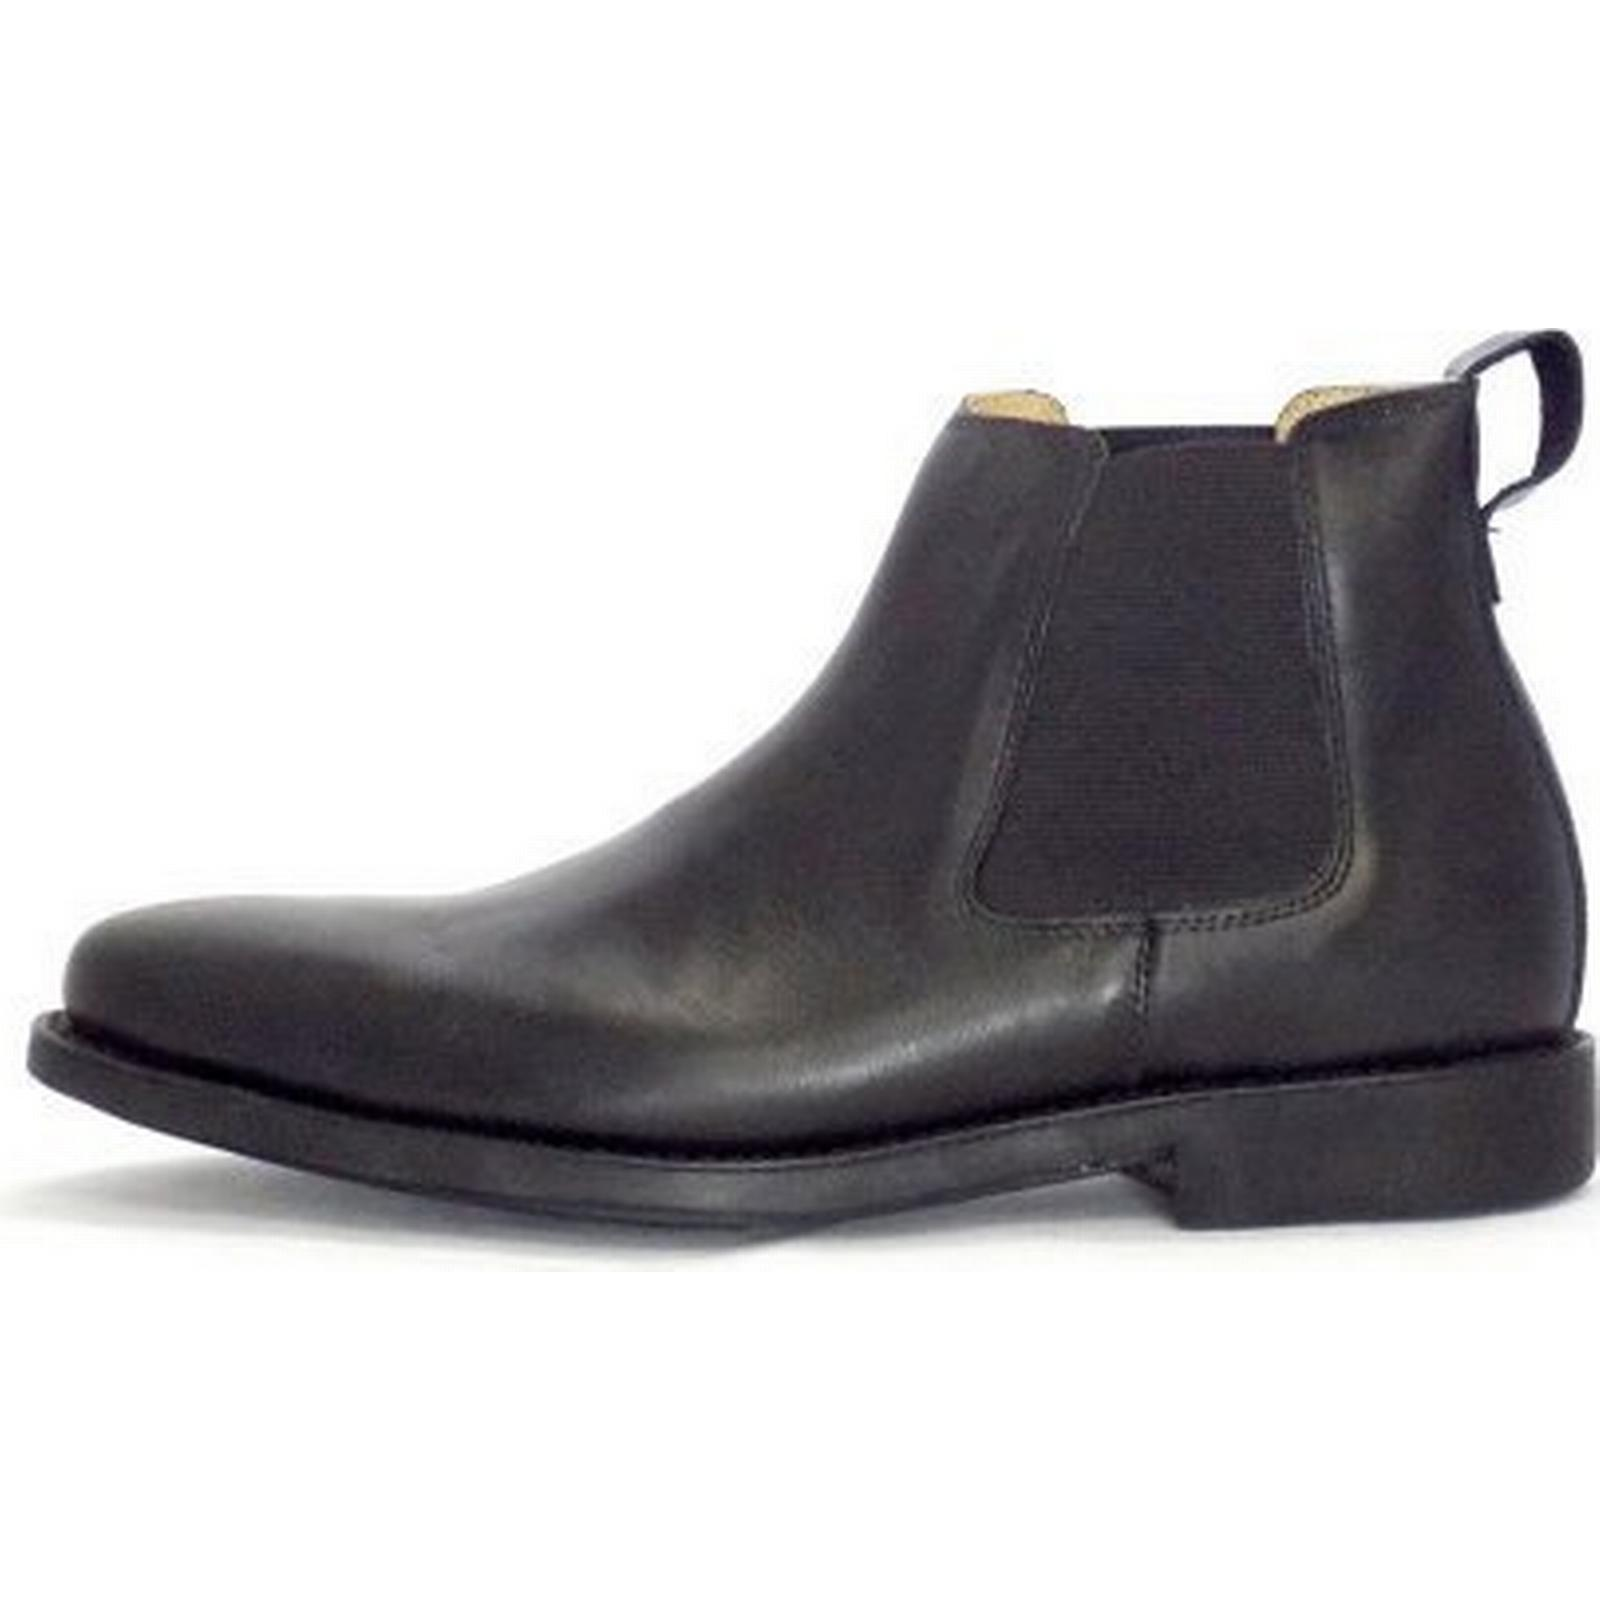 Anatomic&Co Cunha Mens Pull on Boots In Black Size: 47, 47, Size: Colour: BLACK 771ed1